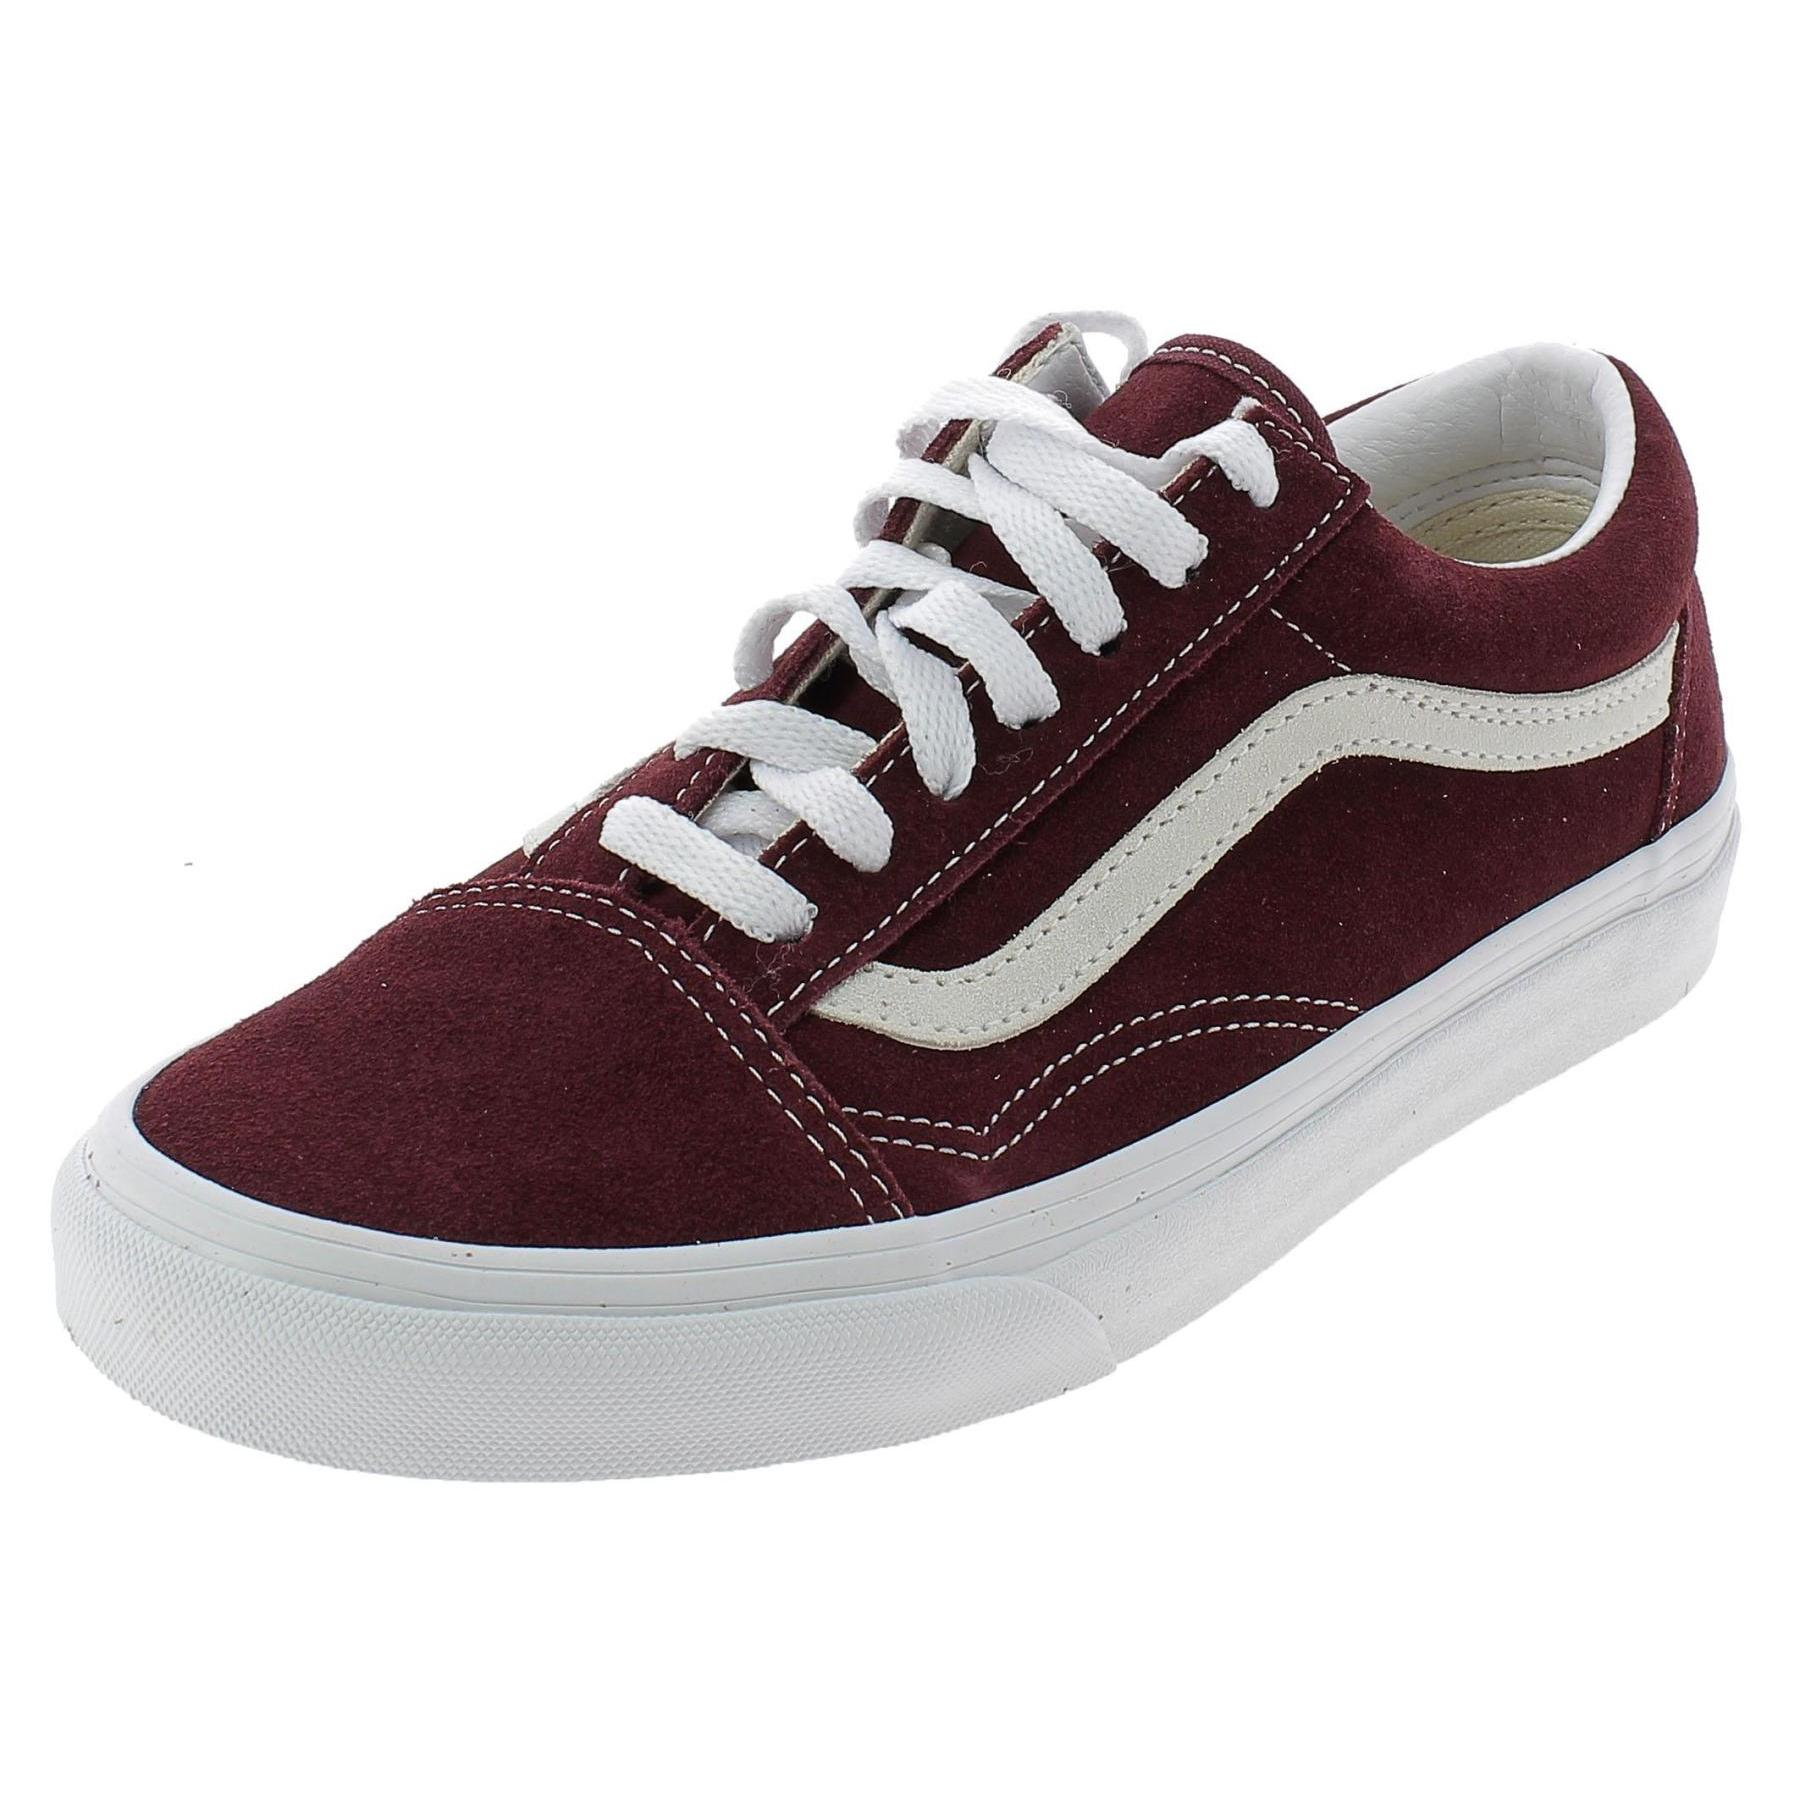 vans old skool bordeaux